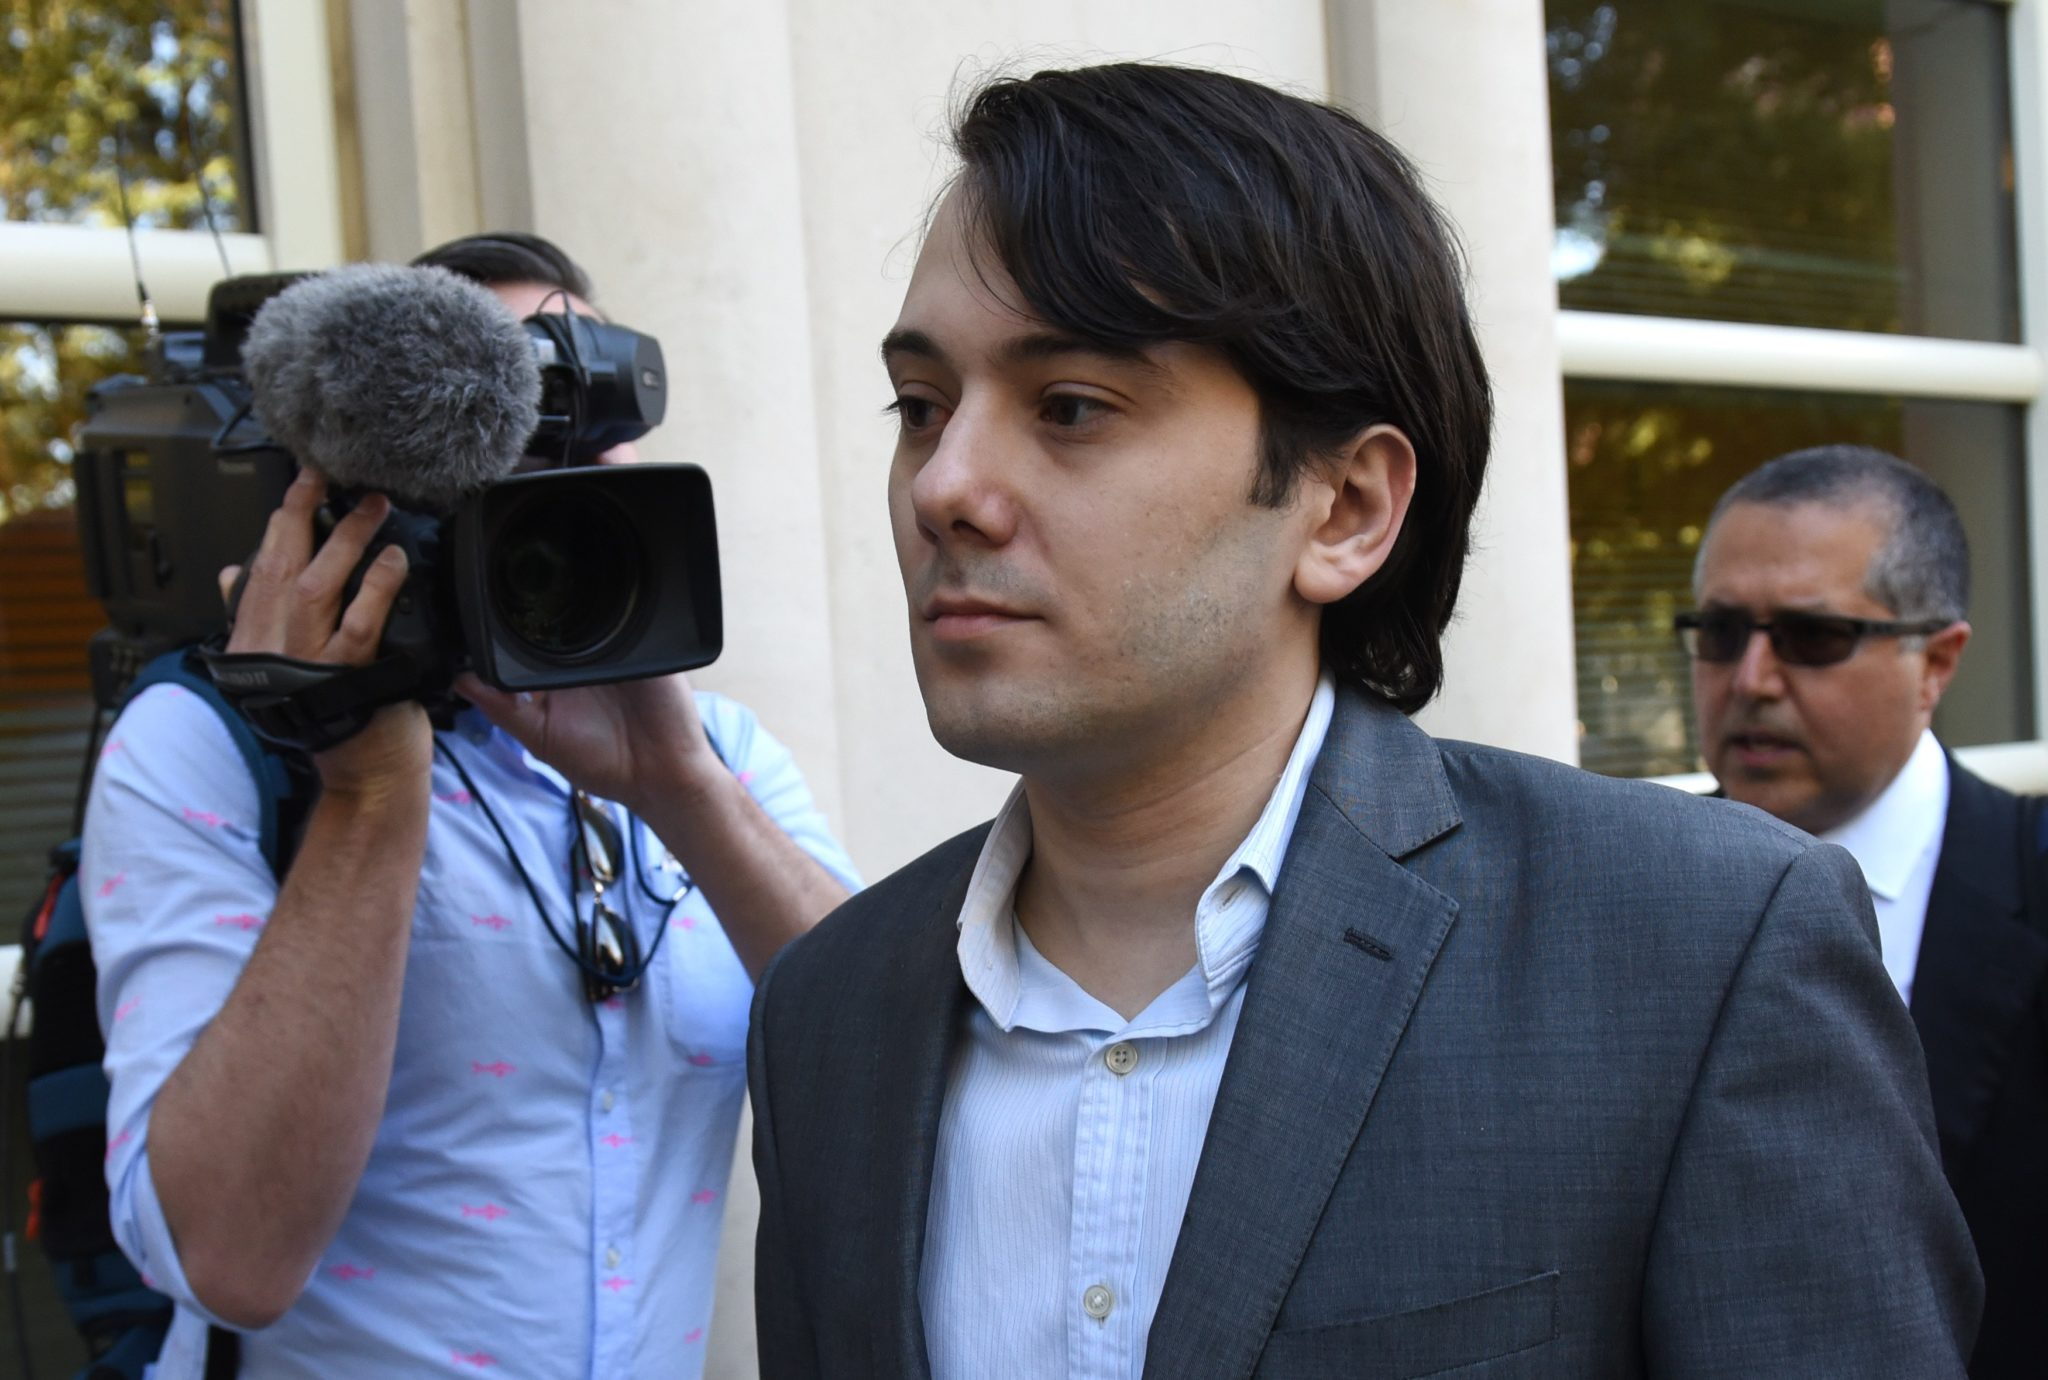 After months of taunts and tantrums, Martin Shkreli's fraud trial gets underway | ENDPOINTS NEWS